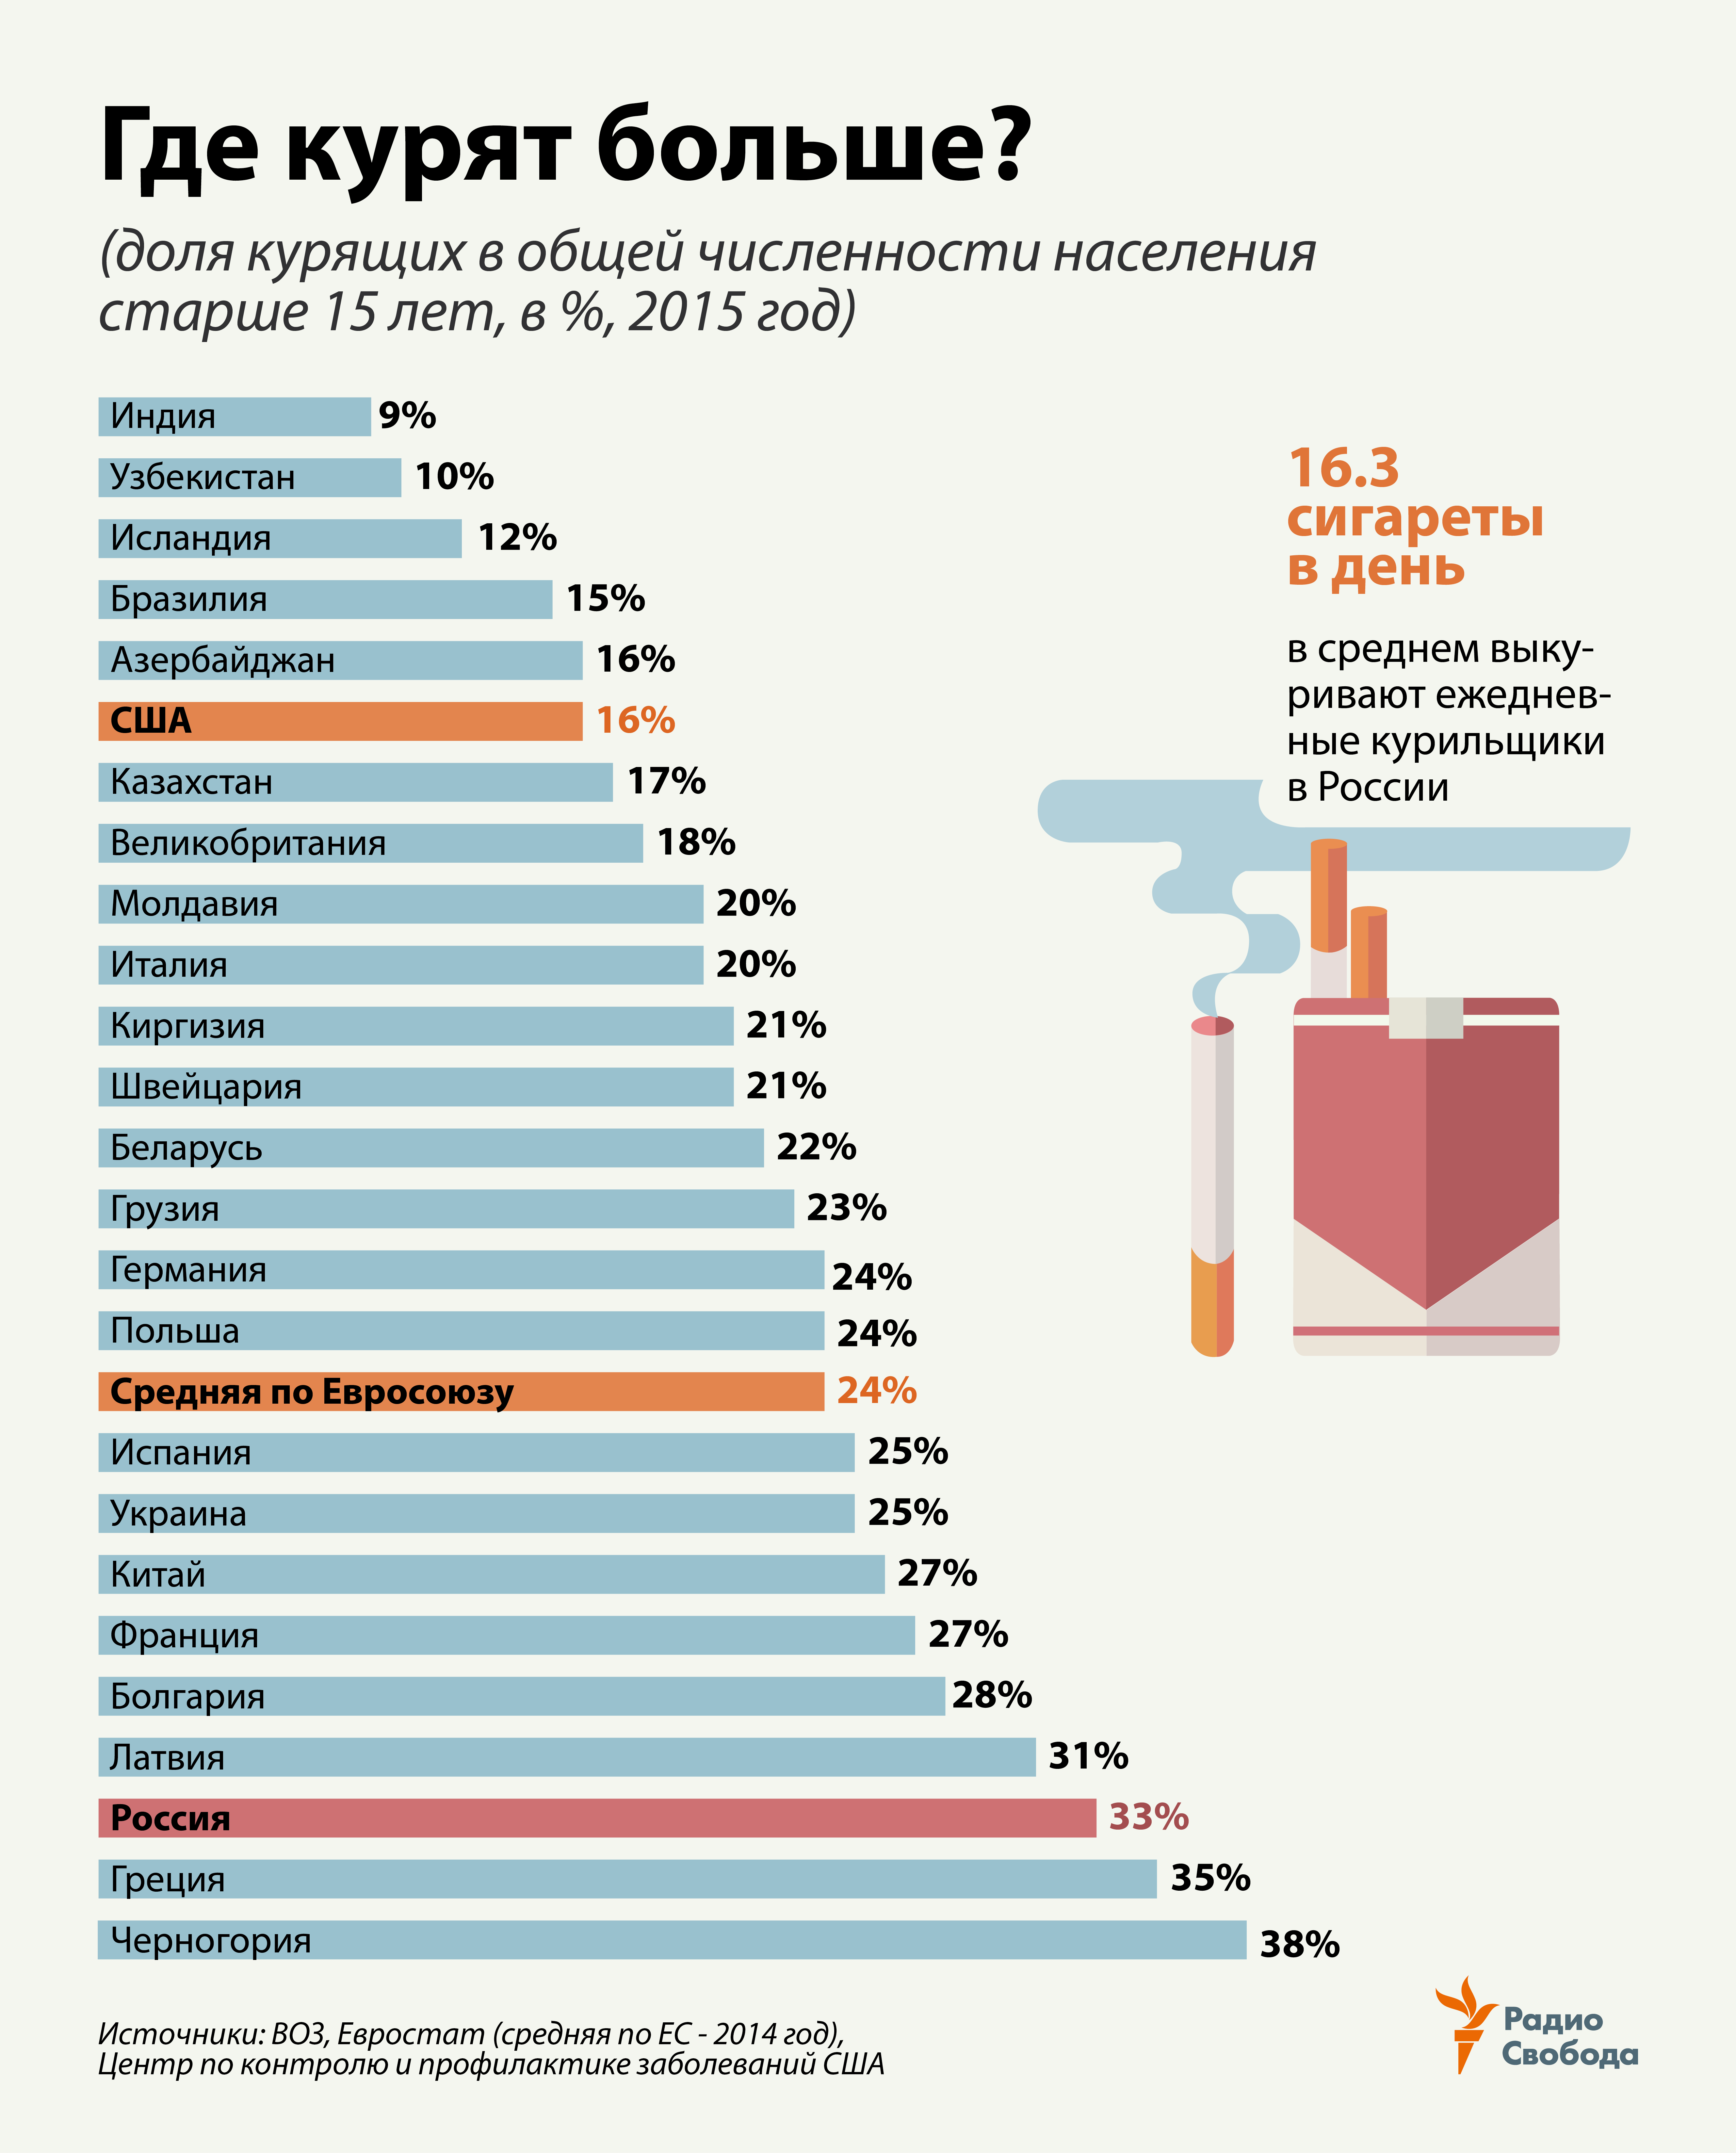 Russia-Factograph-Smoking-Population Share-Current